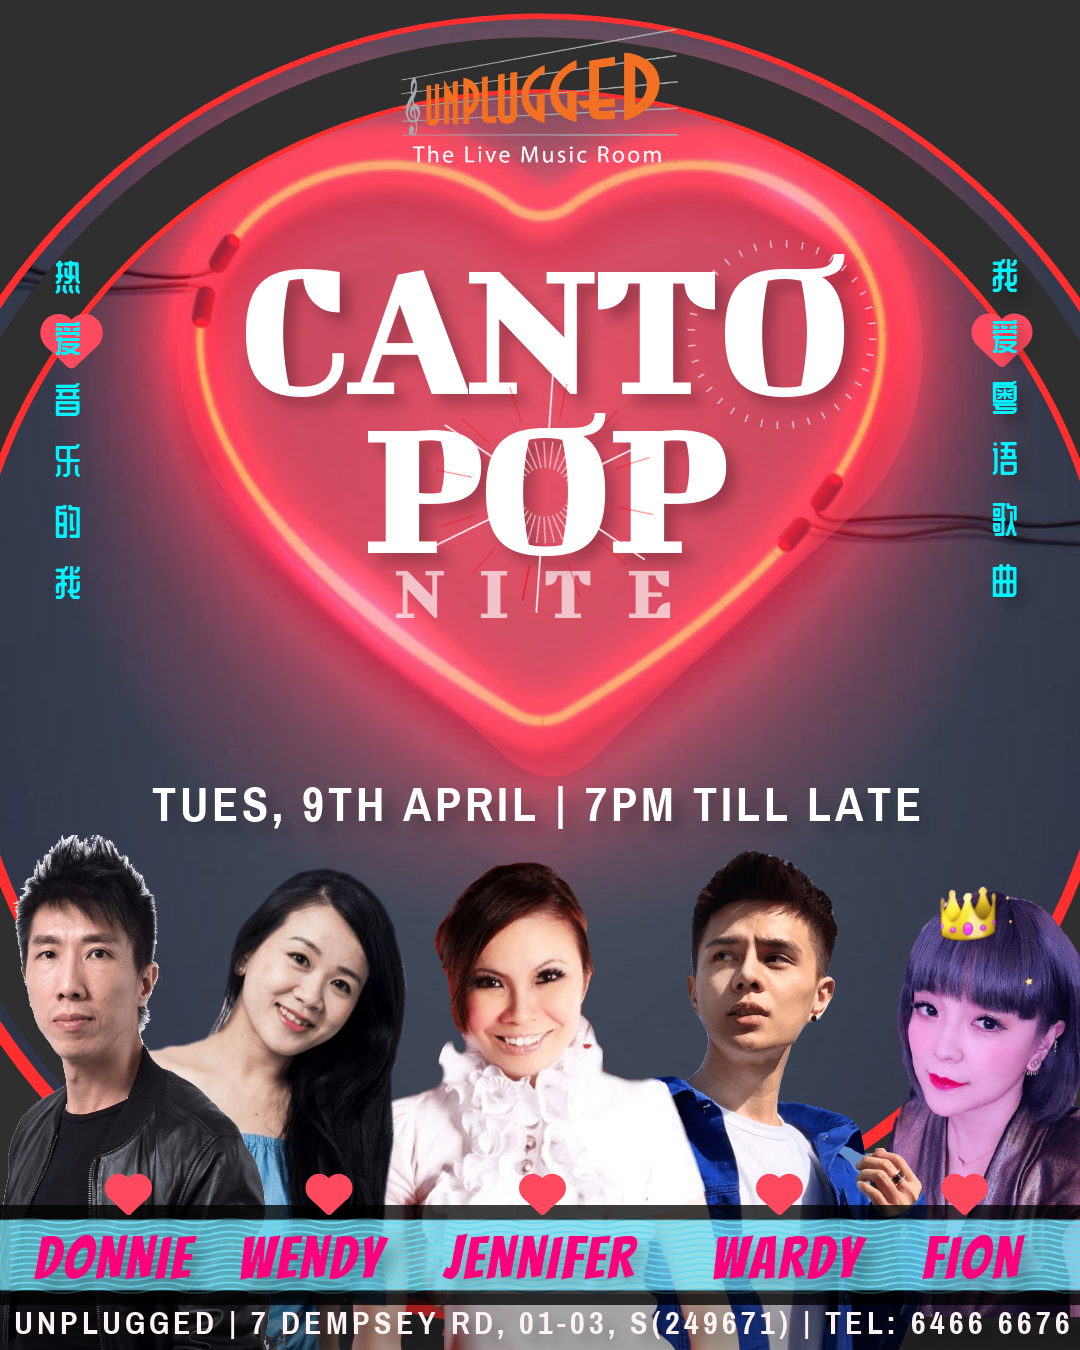 unplugged-canto-nite-09APR